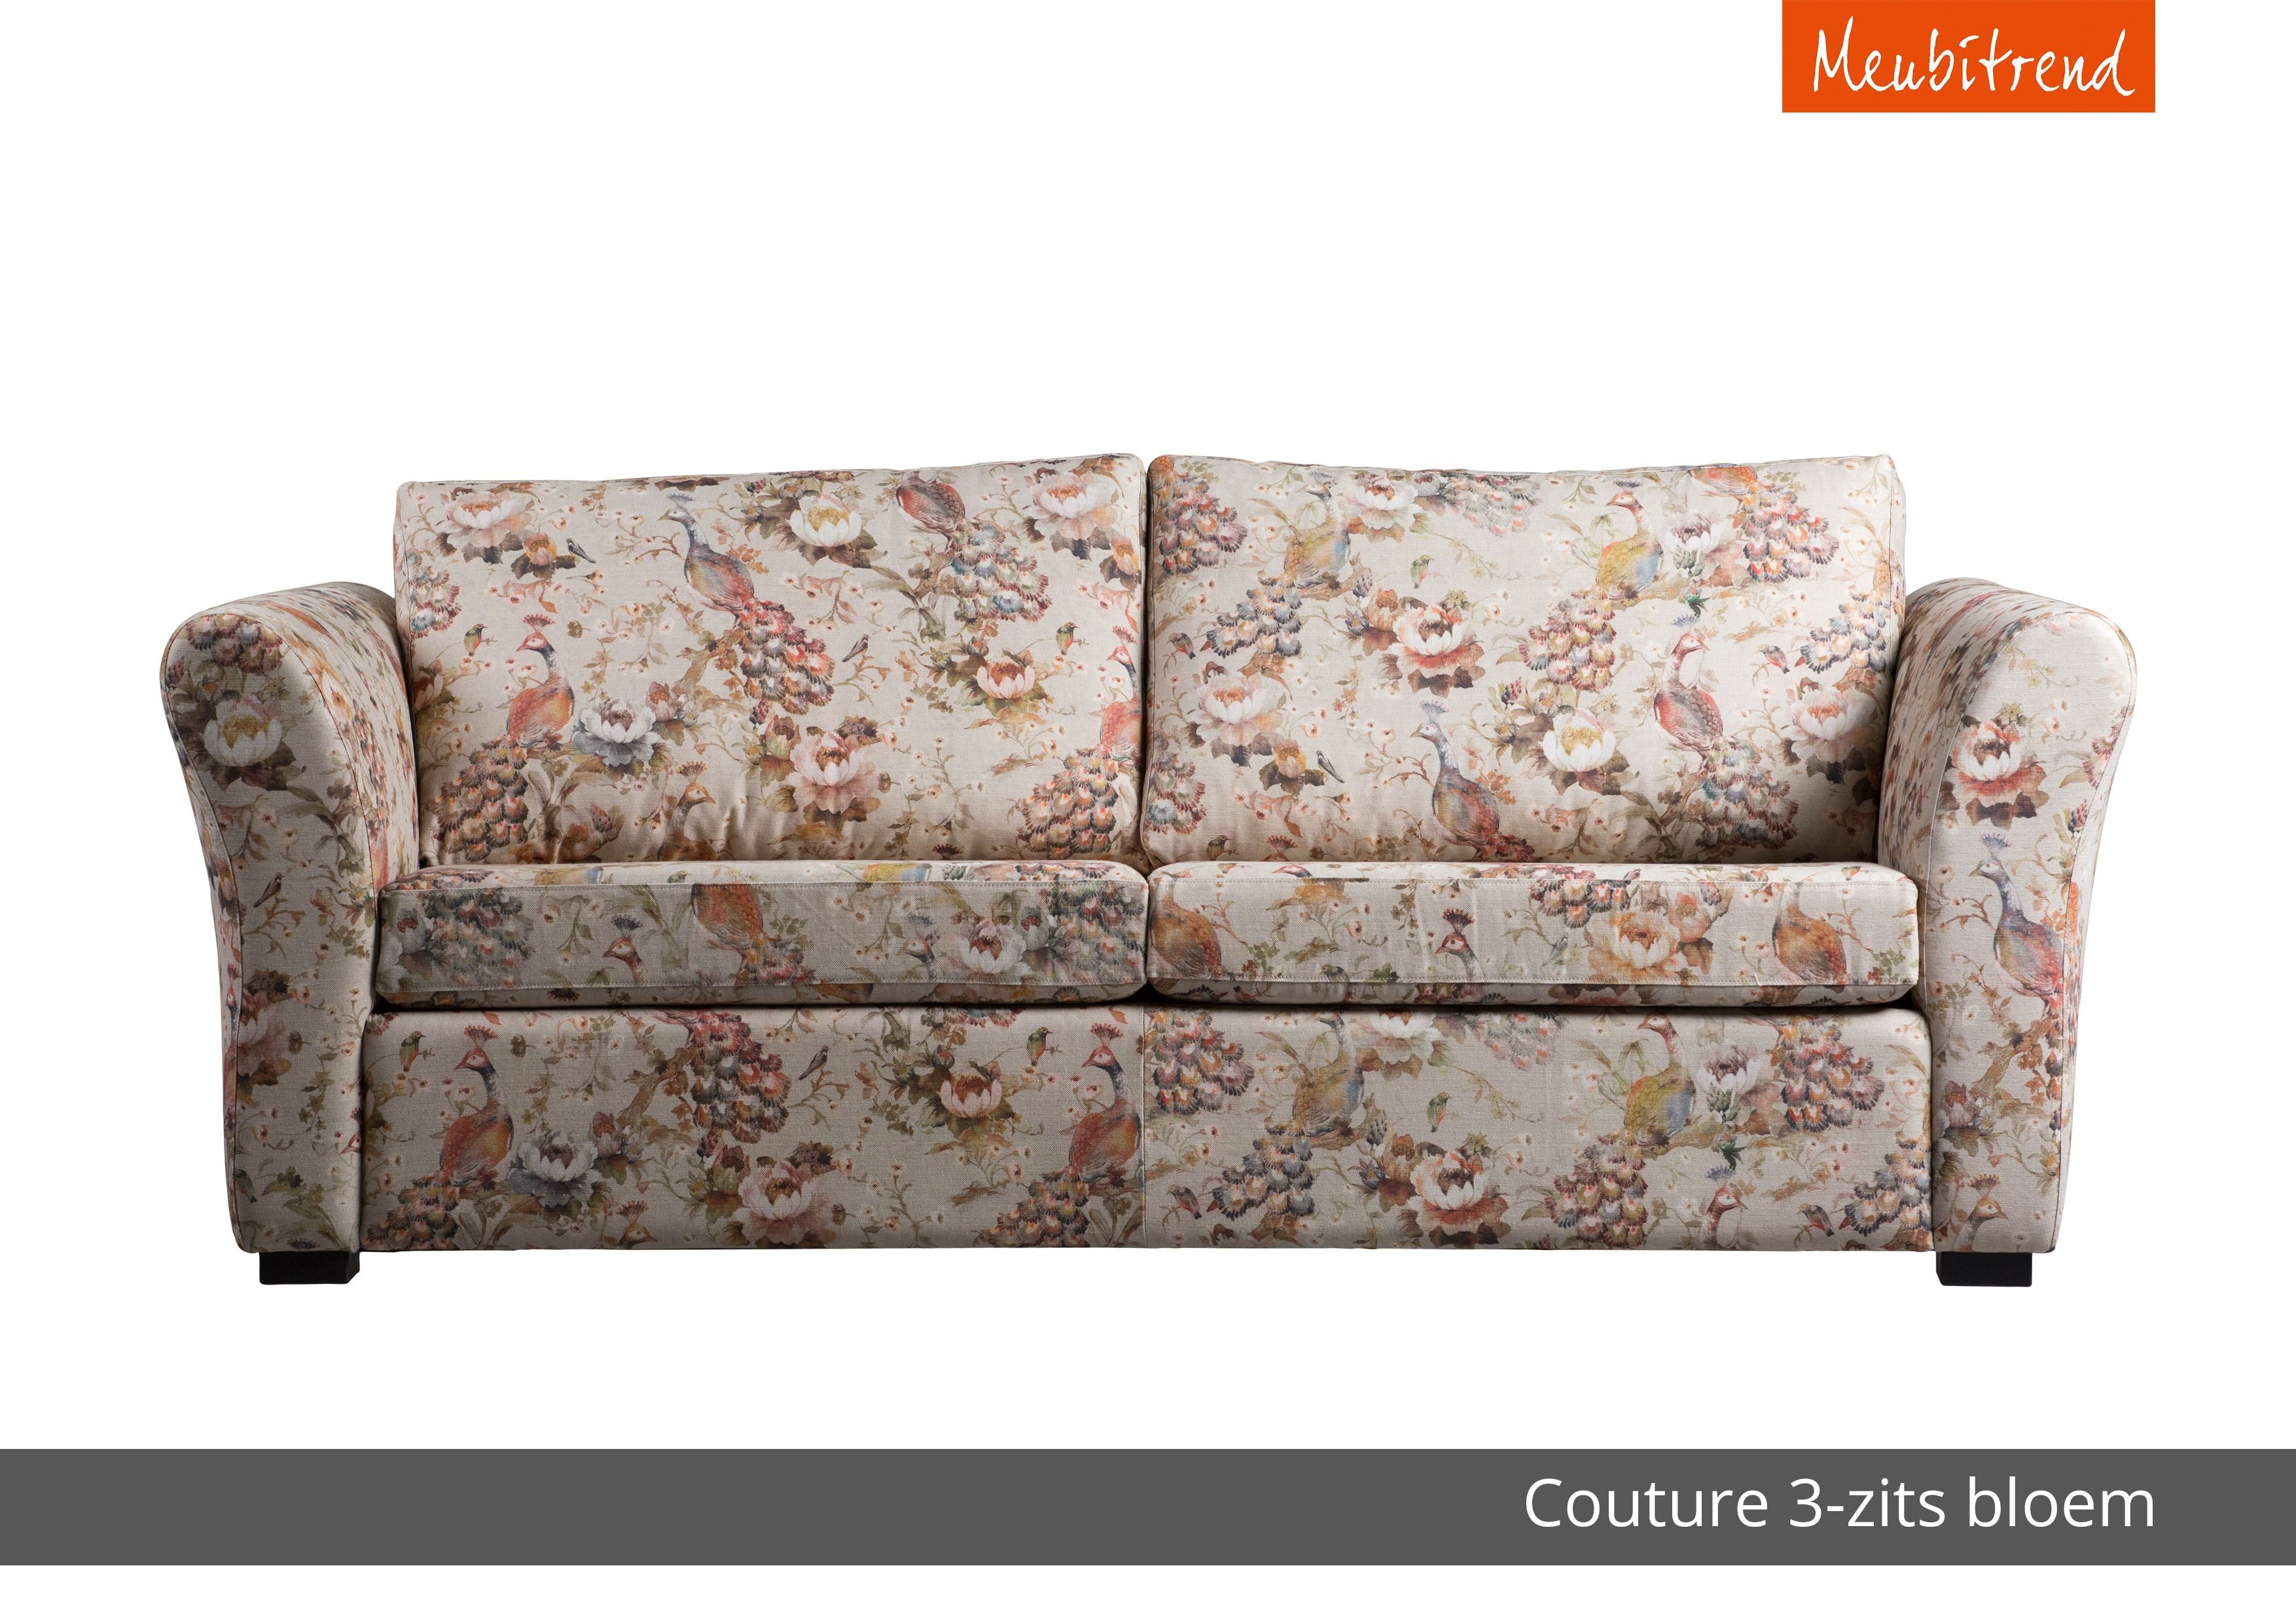 Ronde Bankstellen Perfect Couture Bank Sofa Ronde Arm Gebloemde Stof